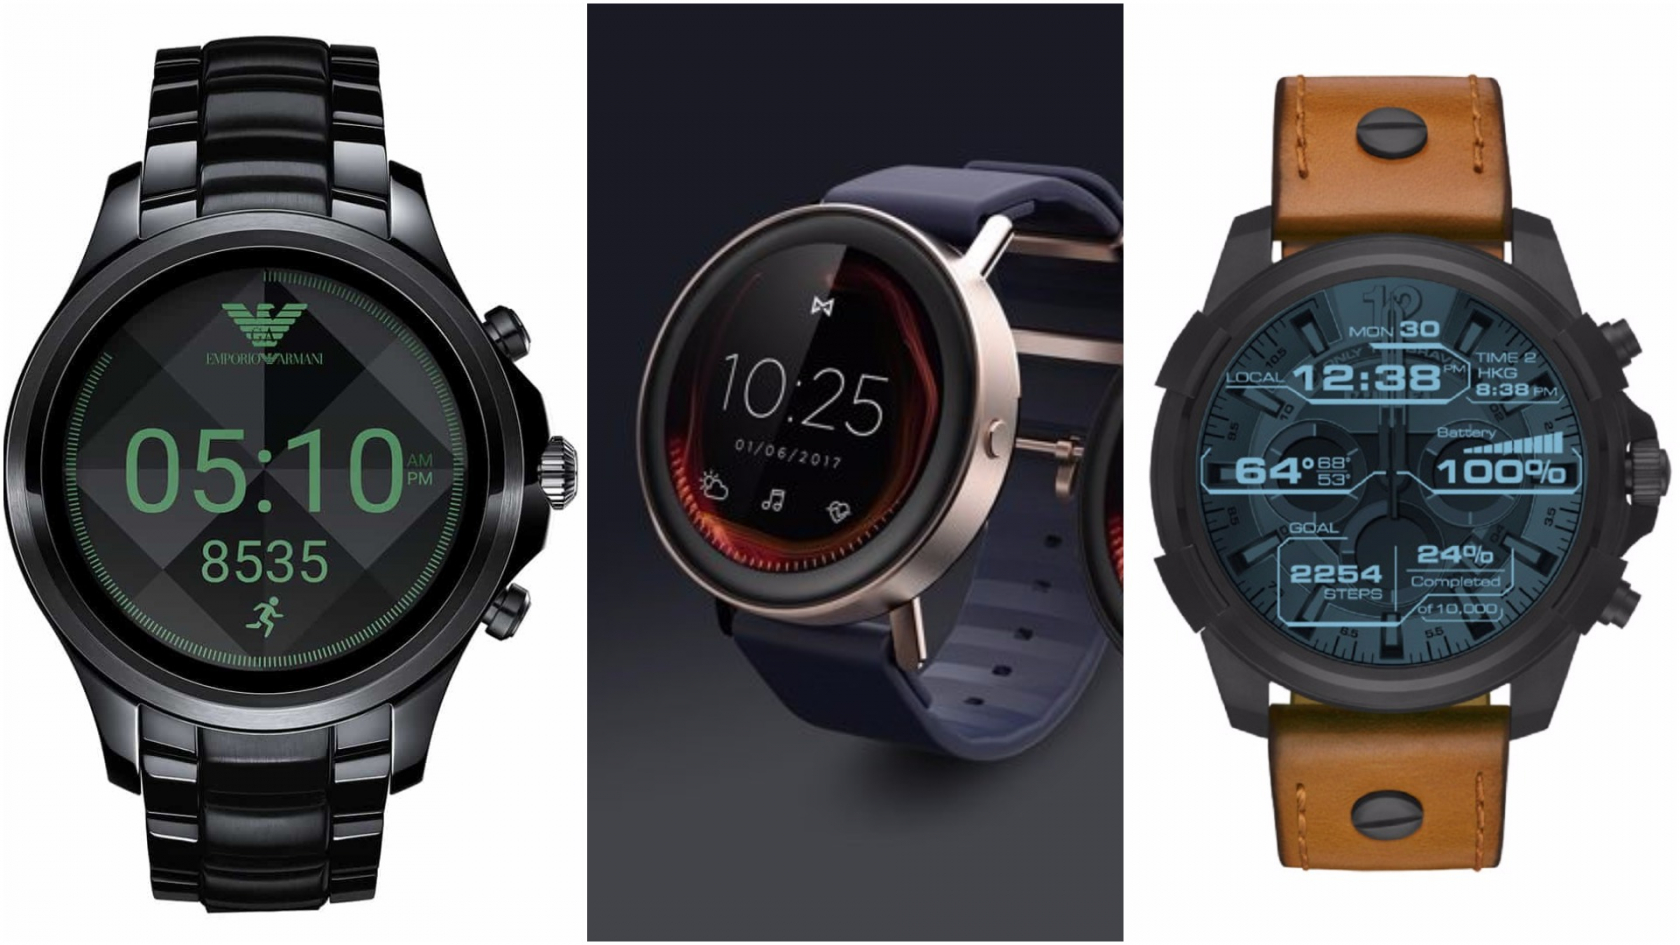 Fossil shows off stylish new Android Wear smartwatches ...